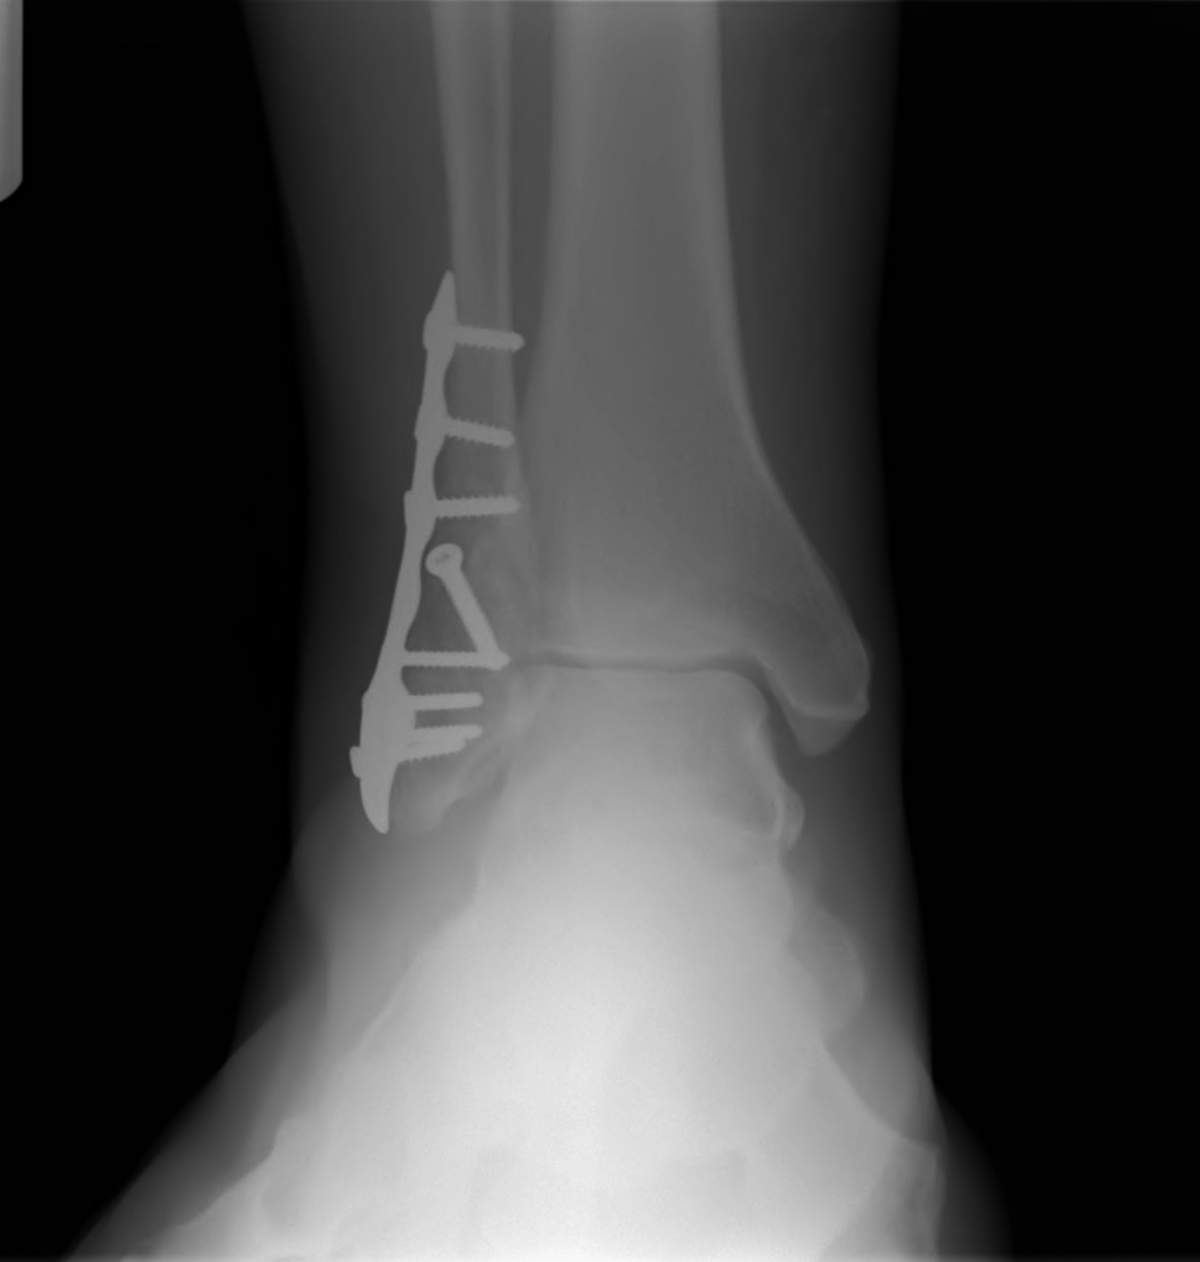 Ankle Fracture Repair with Plates and Screws